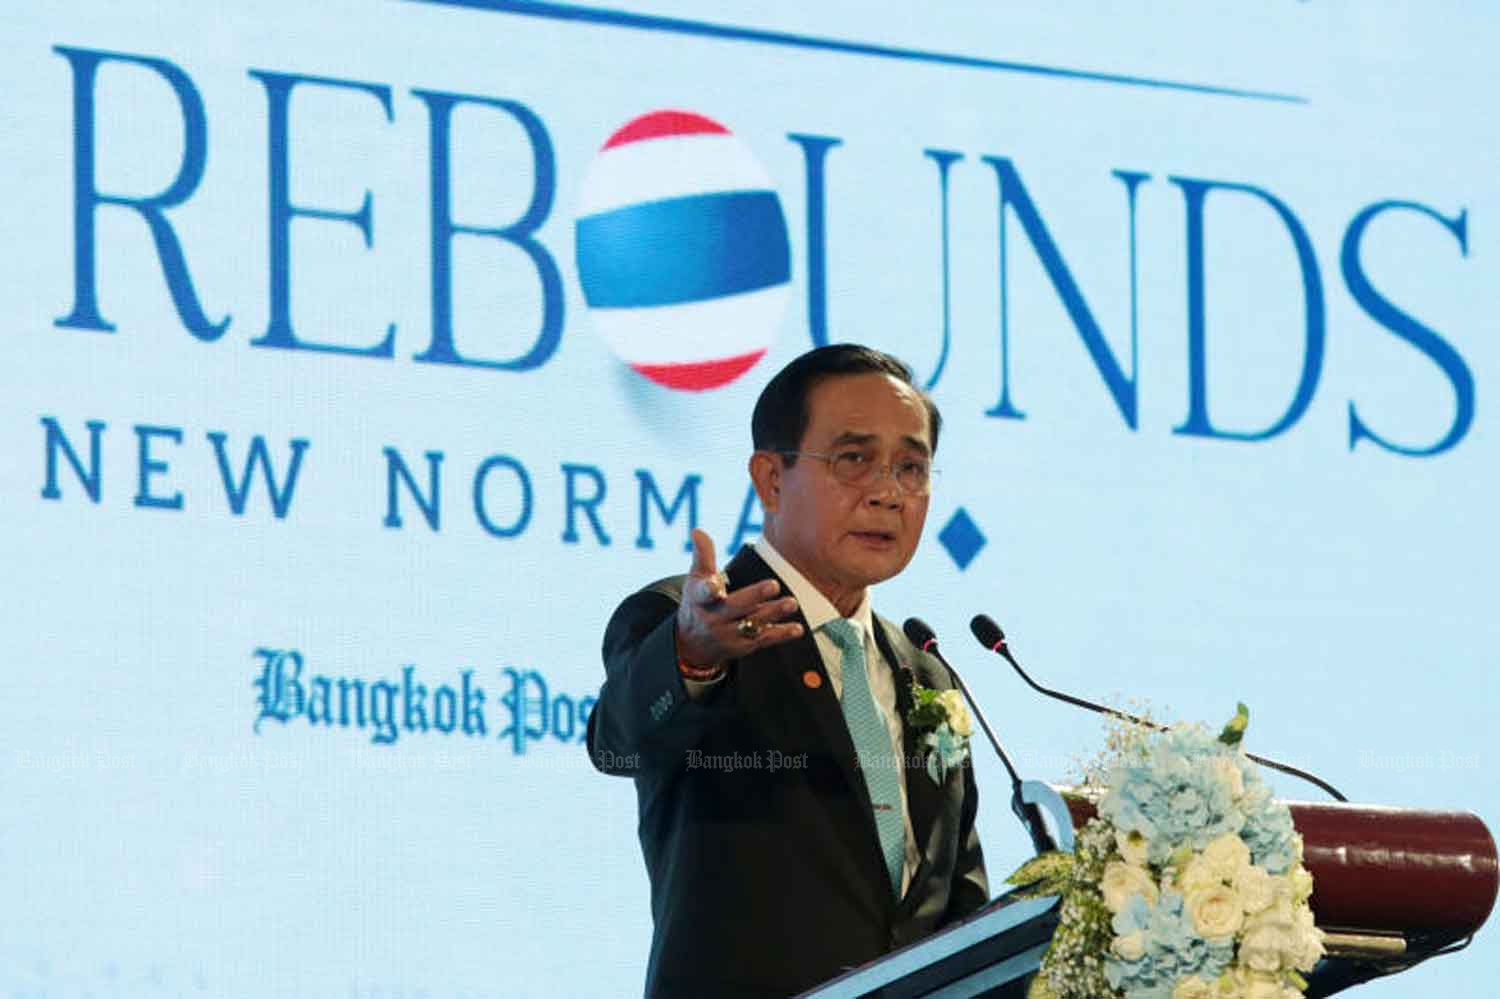 Prime Minister Prayut Chan-o-cha addresses the Bangkok Post Forum 2020 in Bangkok on Thursday. (Photo: Chanat Katanyu)